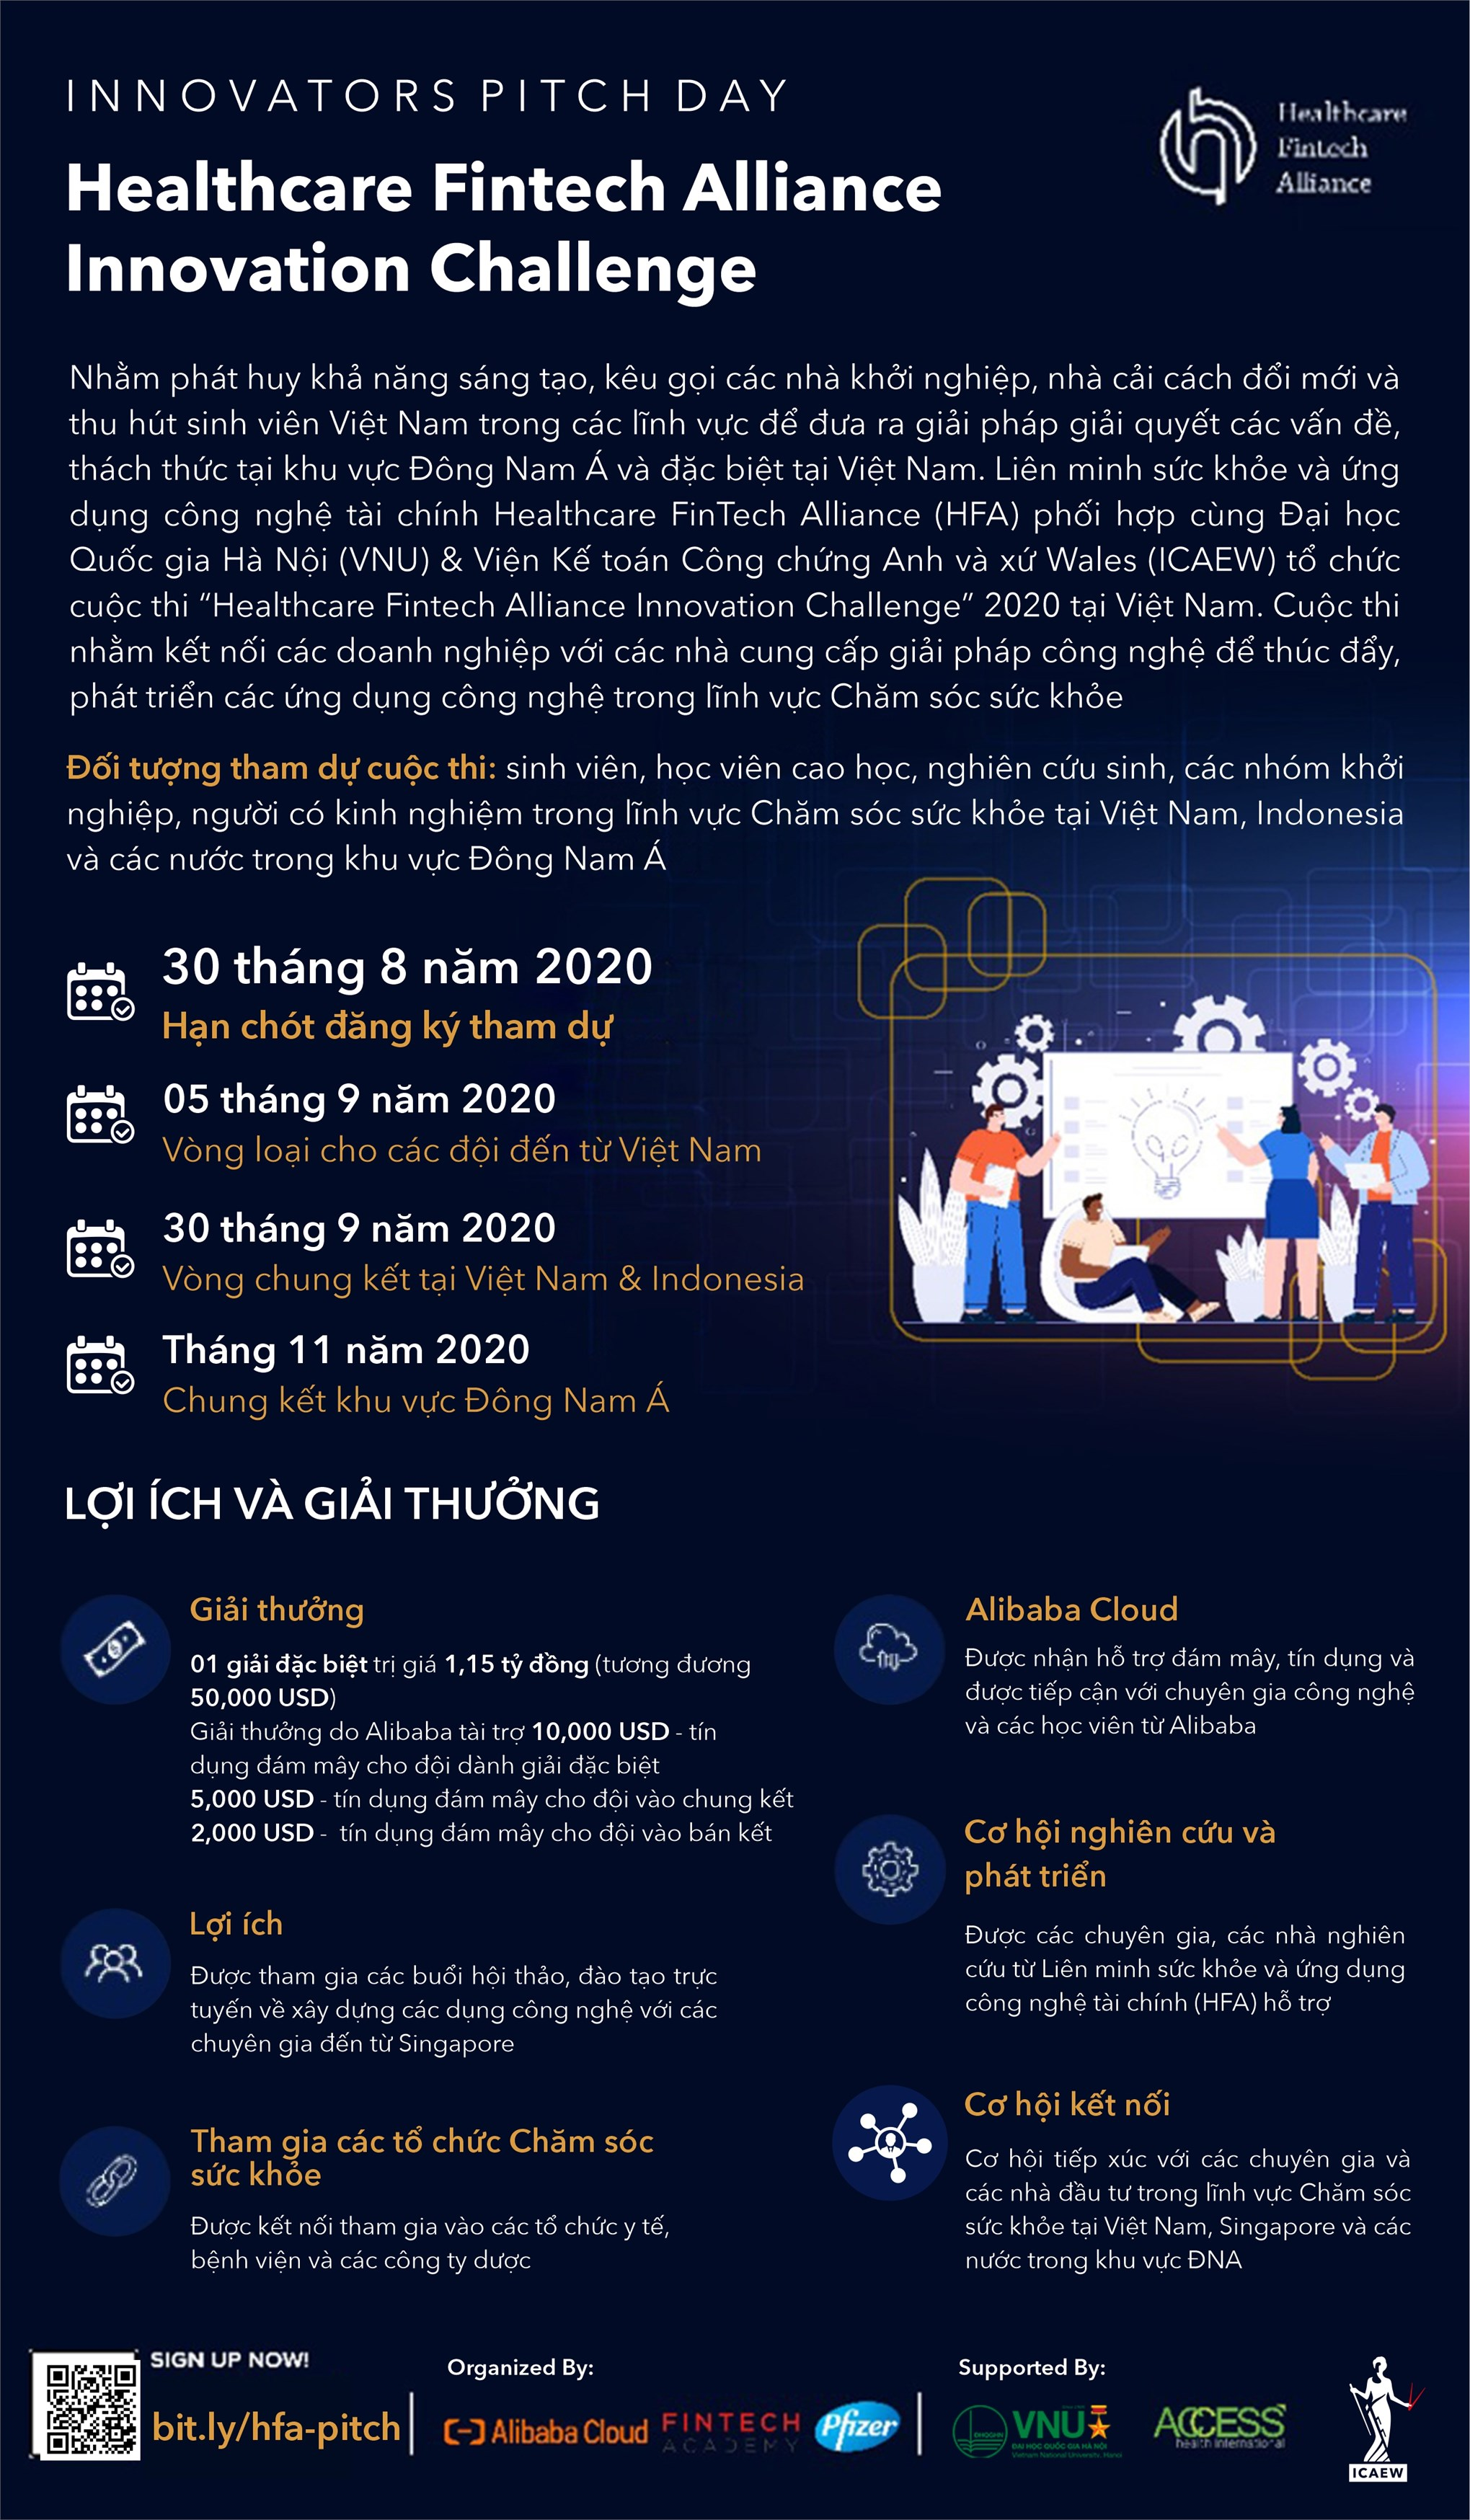 CUỘC THI `HEALTHCARE FINTECH ALLIANCE INNOVATION CHALLENGE 2020`